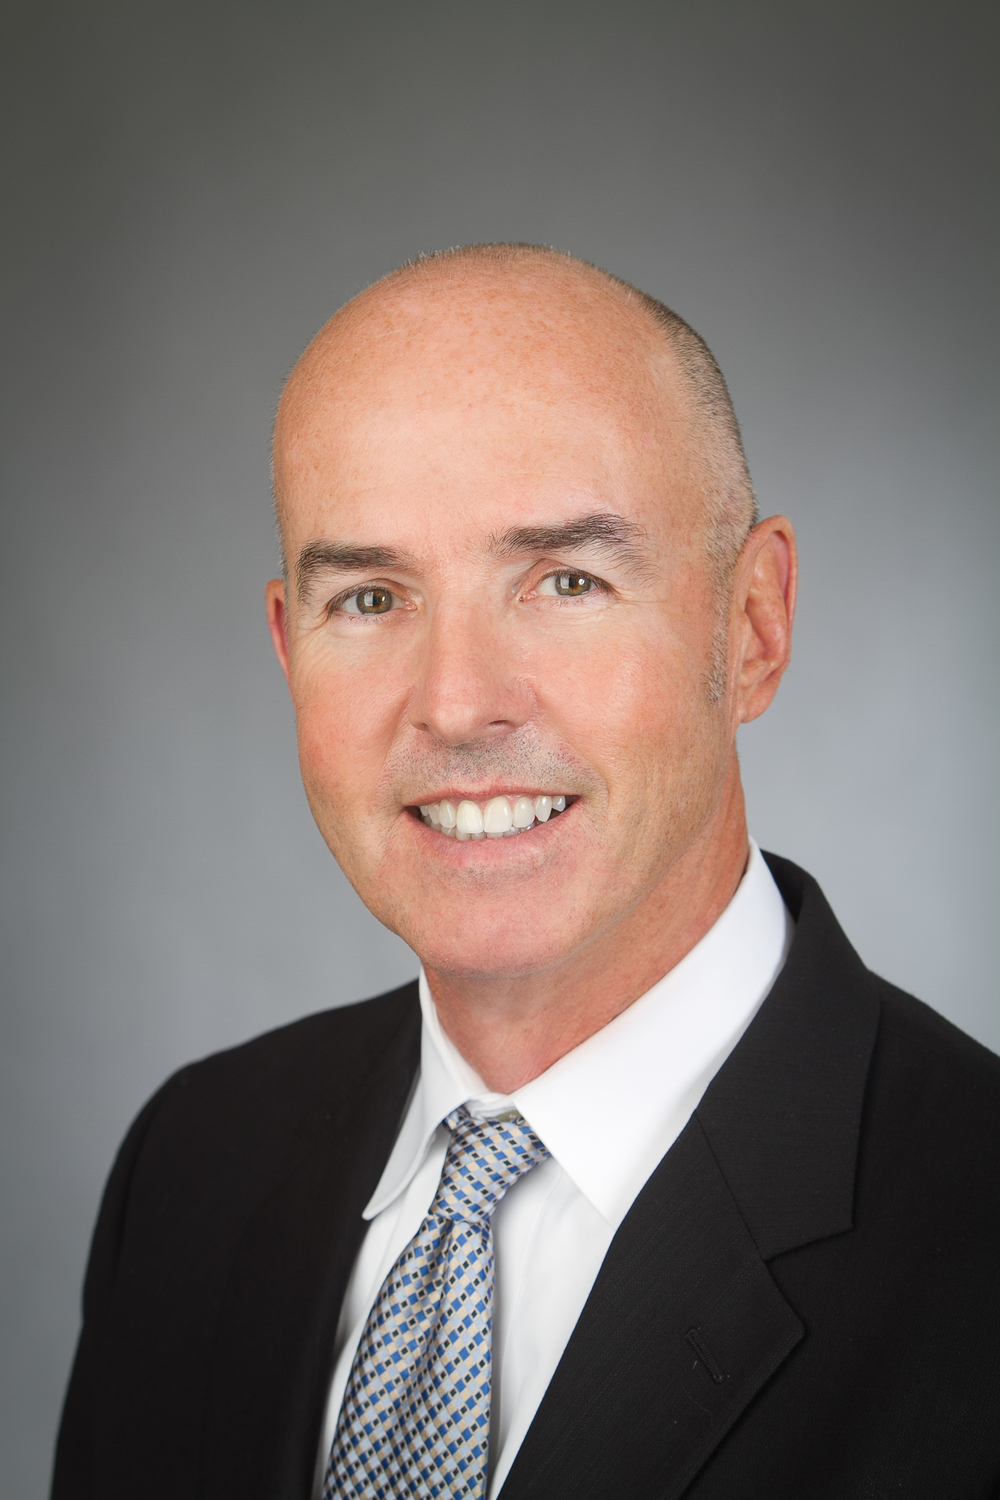 Paul M. Cate CEO / President With over twenty-five years of executive experience in the real estate development and financial services fields, Mr. Cate has guided the company since 1998 setting the strategic direction and actively managing the execution of specific corporate goals.